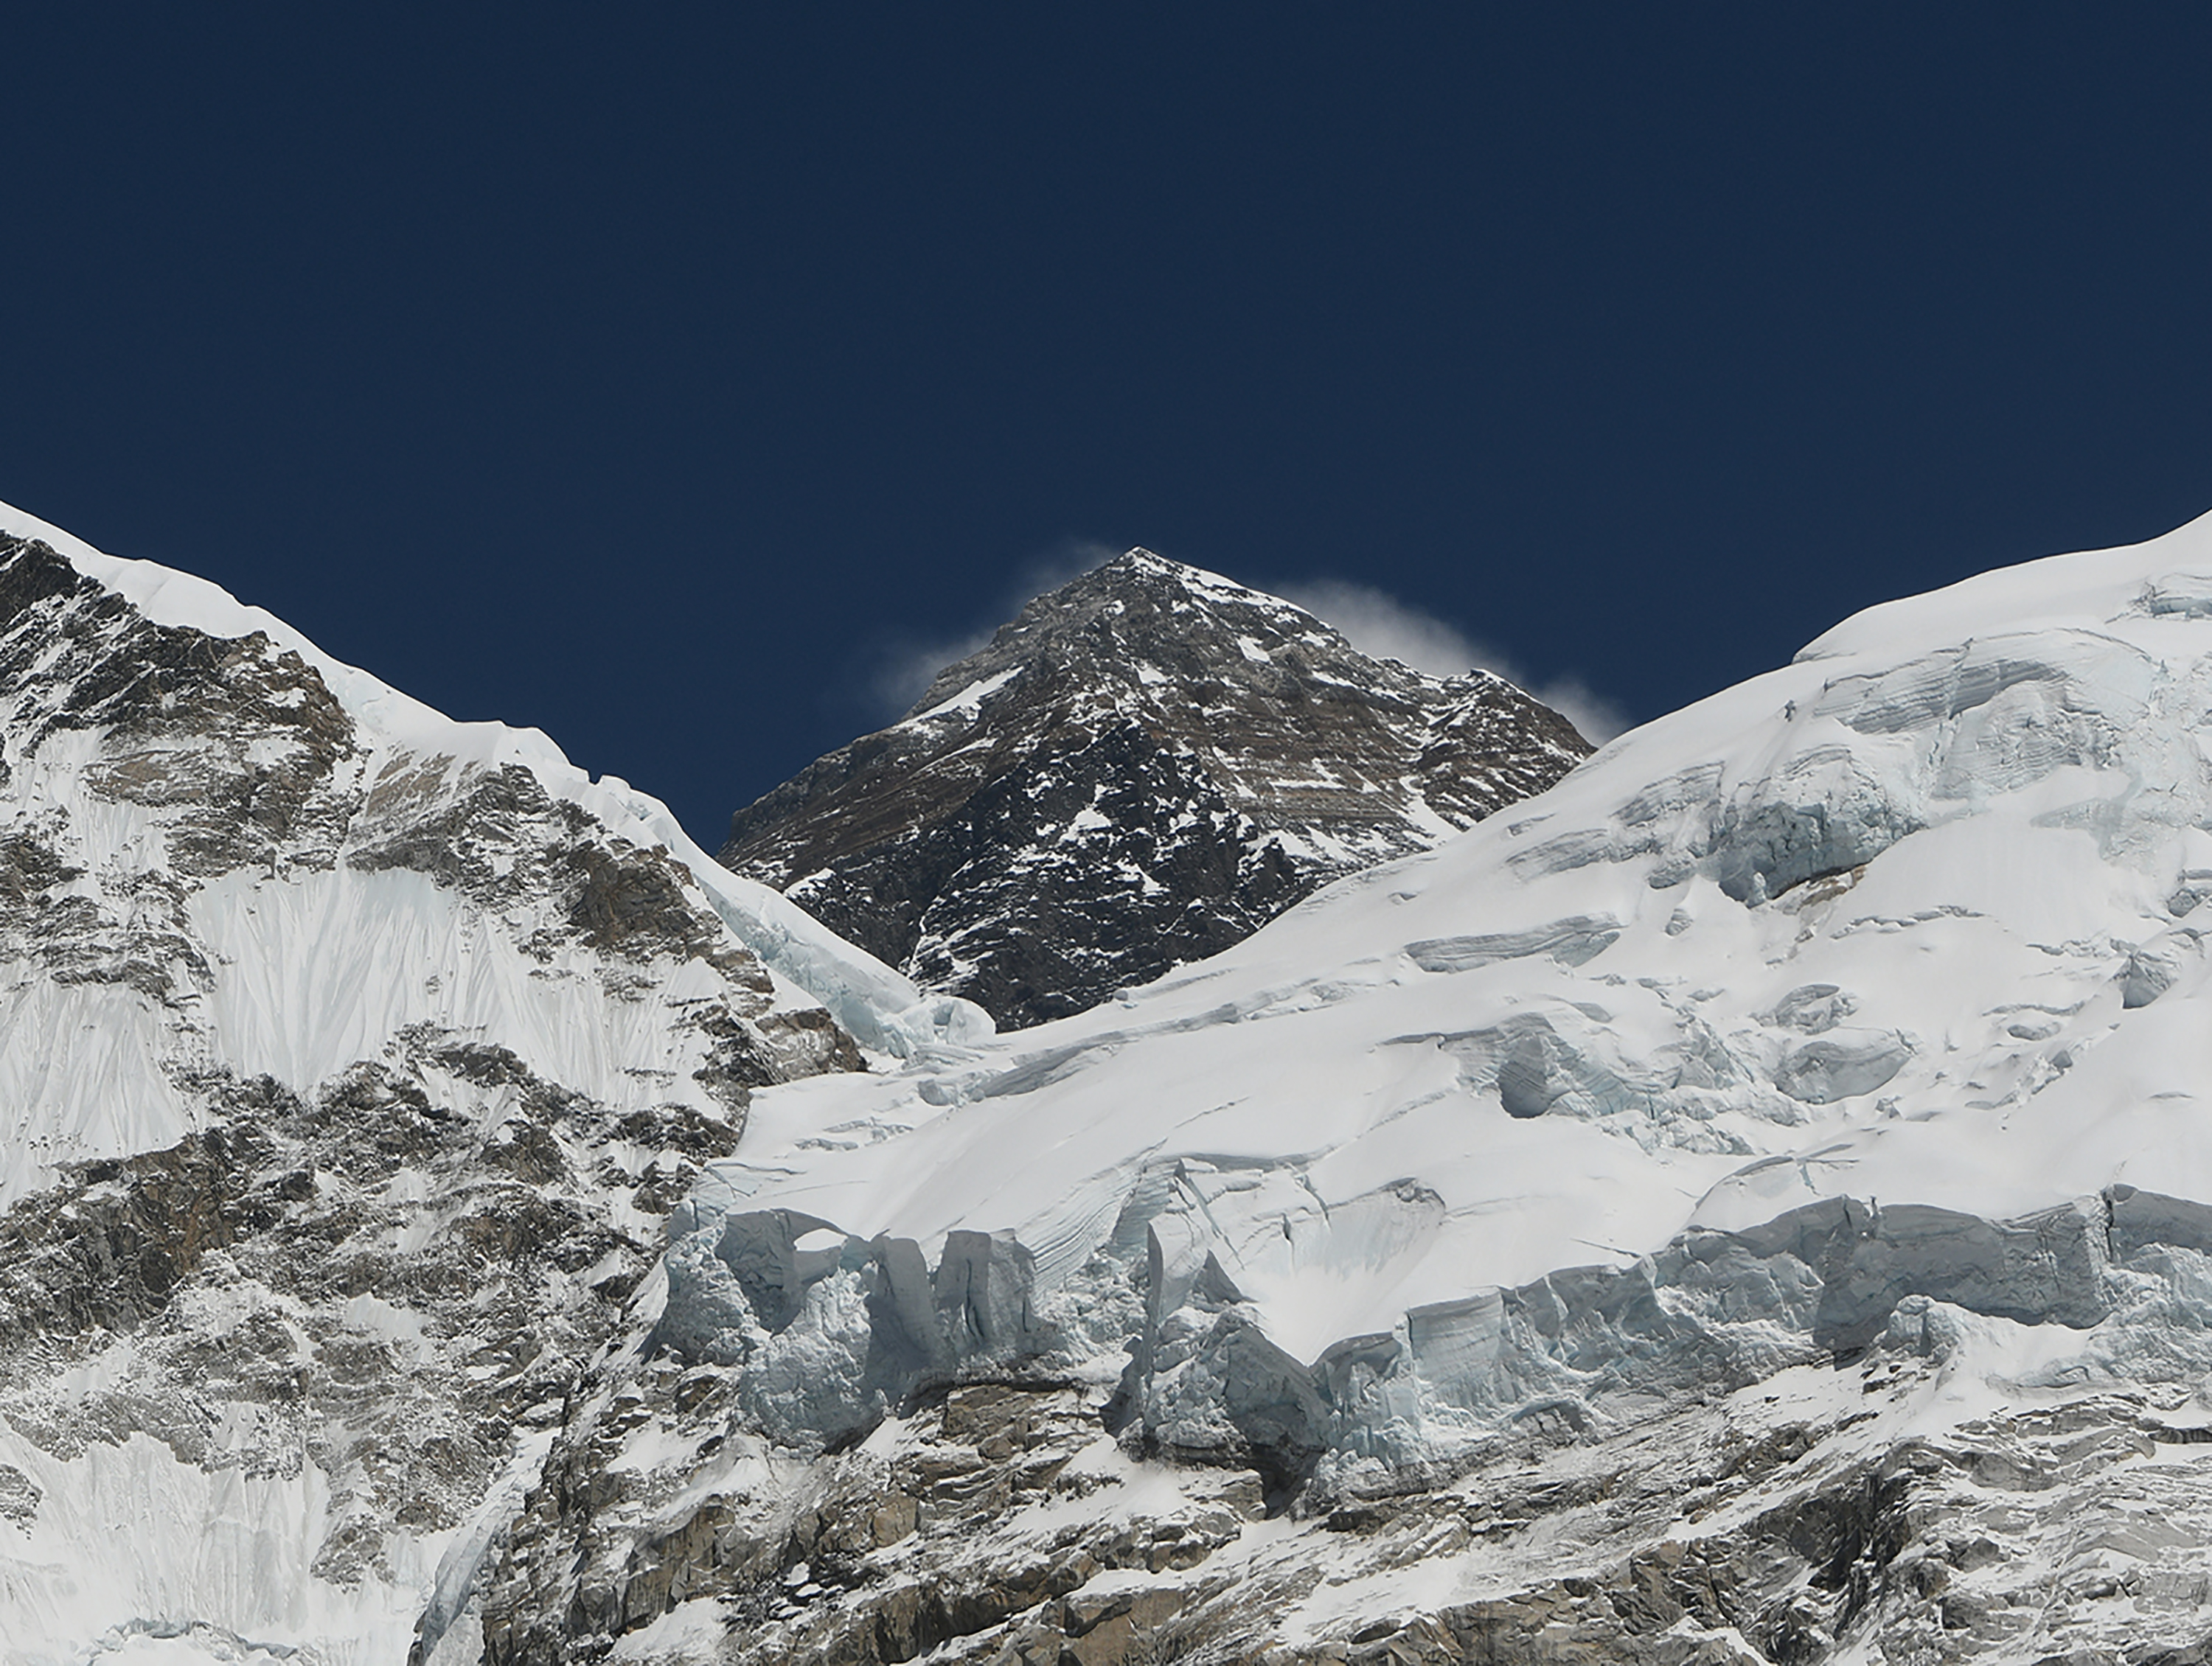 In this photograph taken on April 21, 2018, Mount Everest (height 8848 metres) is seen in the Everest region some 140 km northeast of the Nepali capital Kathmandu.